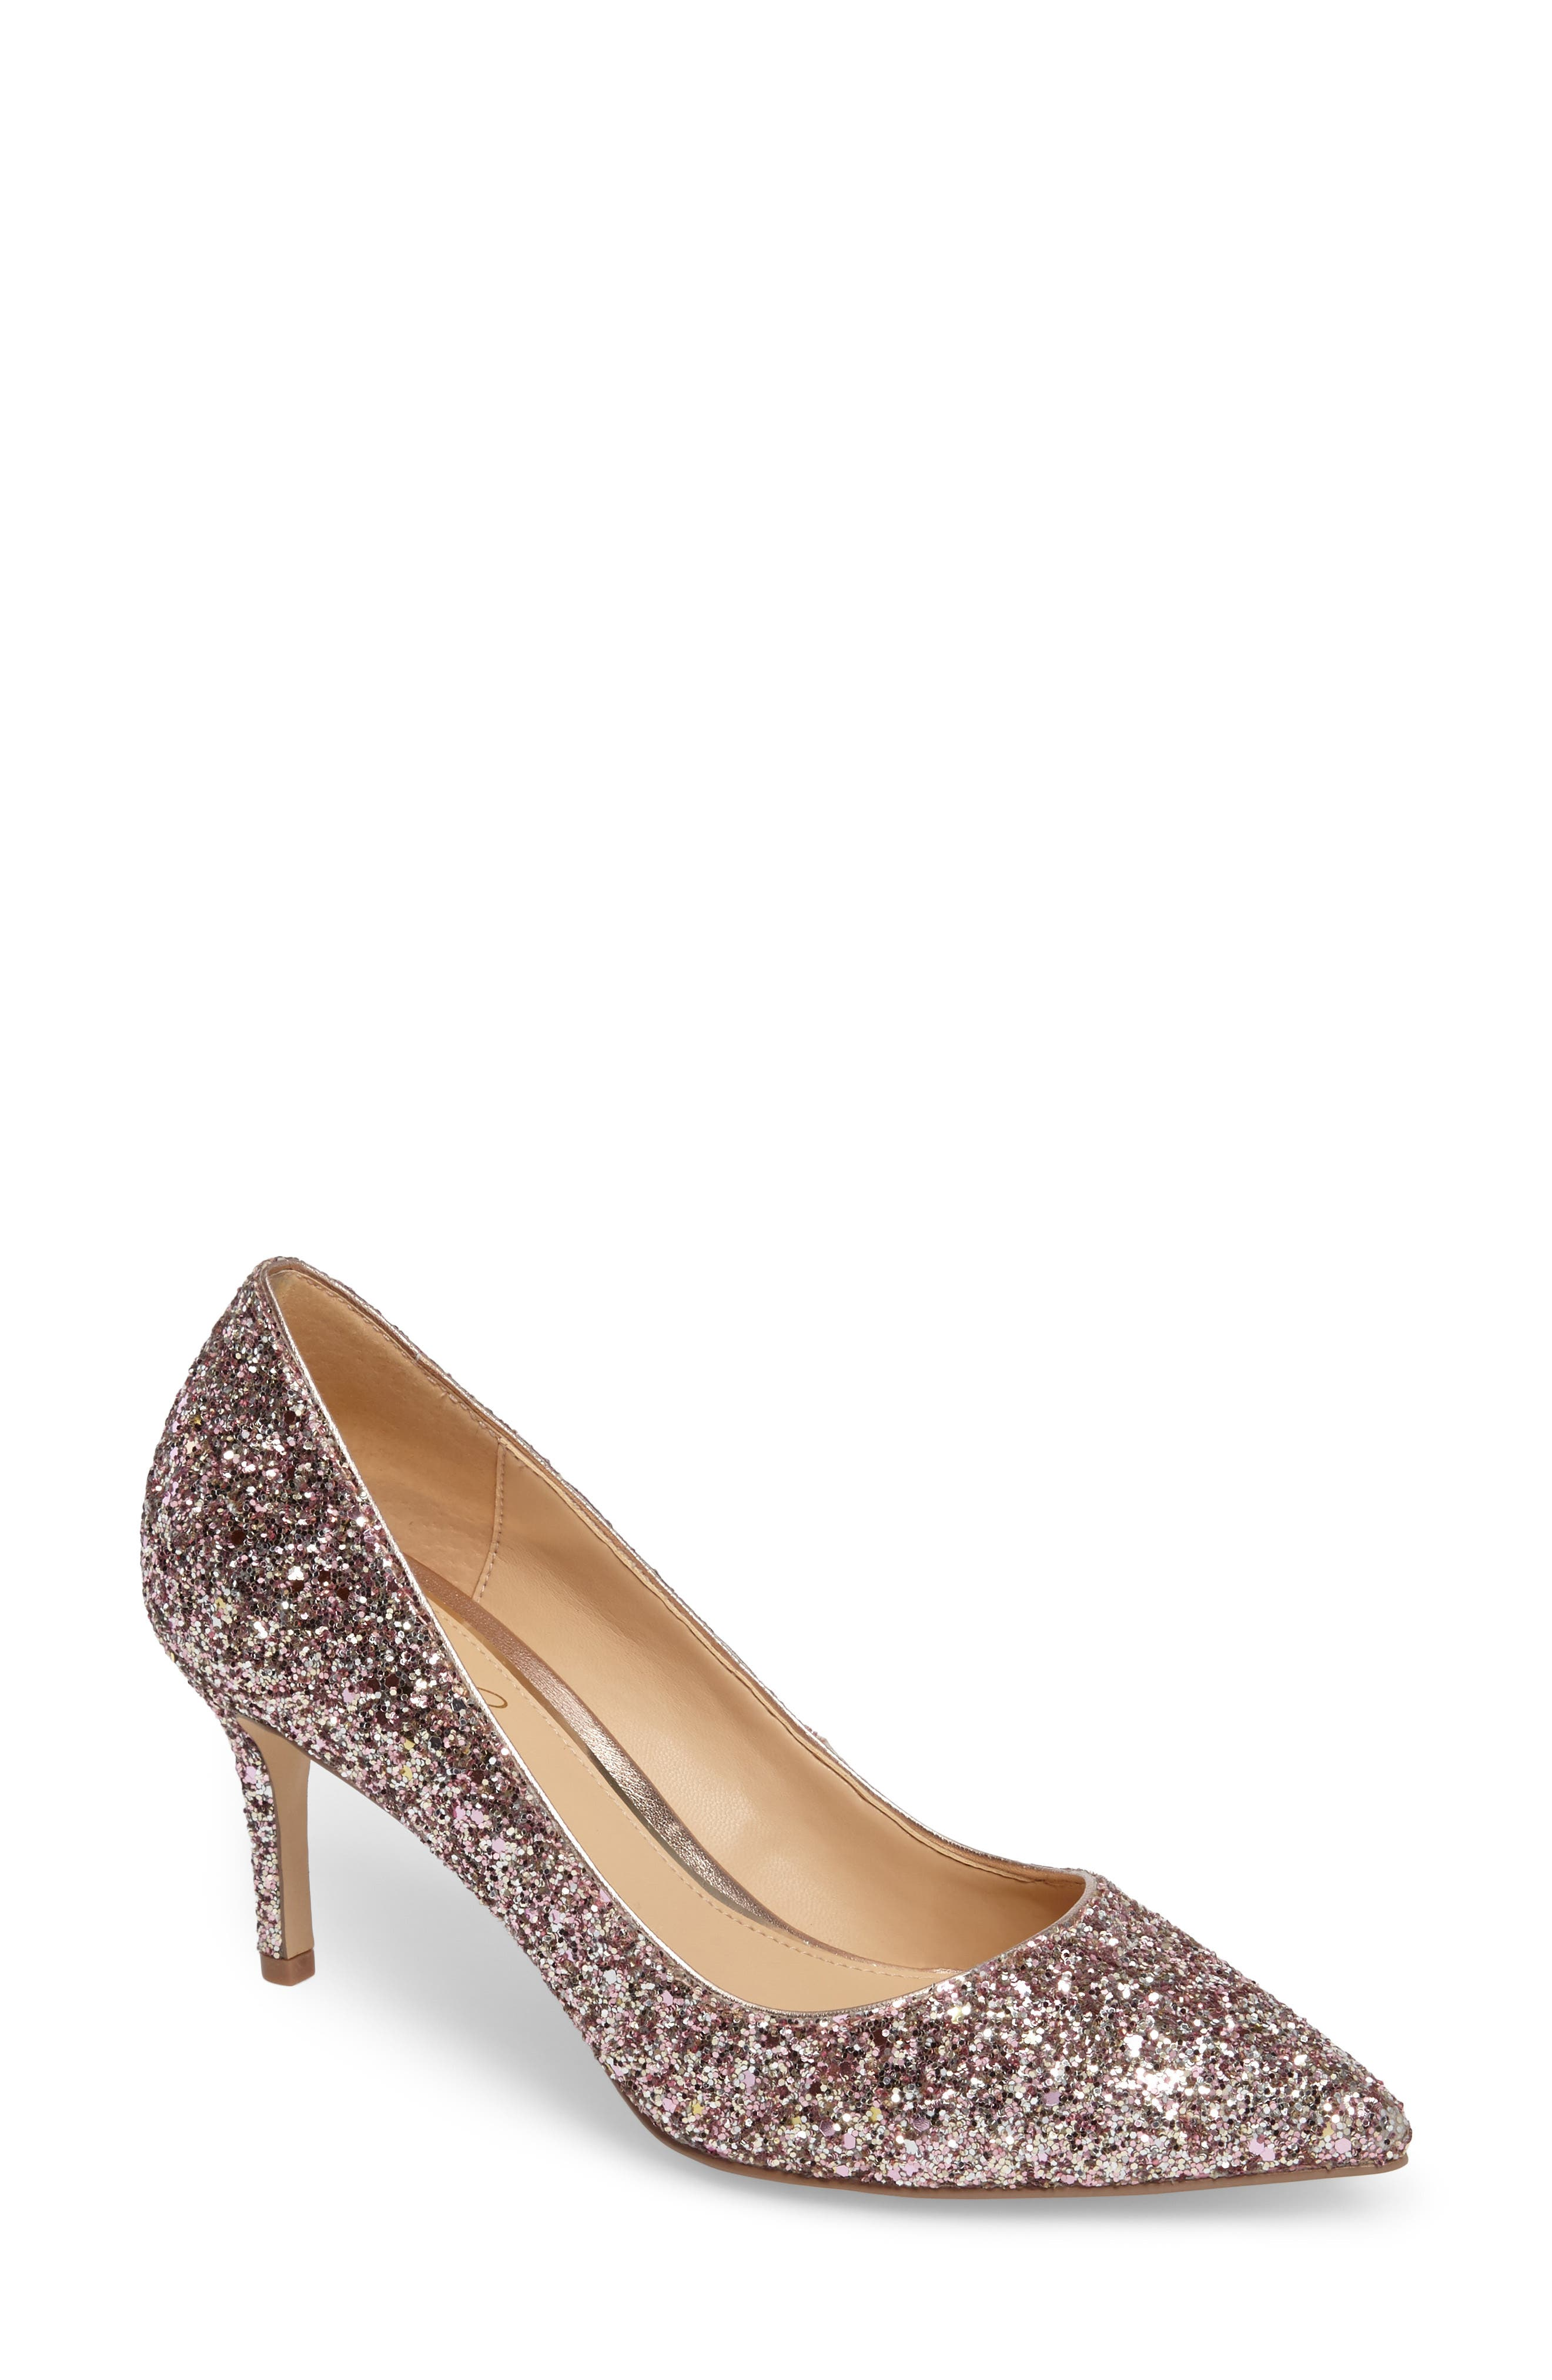 Lyla Glitter Pointy Toe Pump,                             Main thumbnail 1, color,                             ROSE GOLD